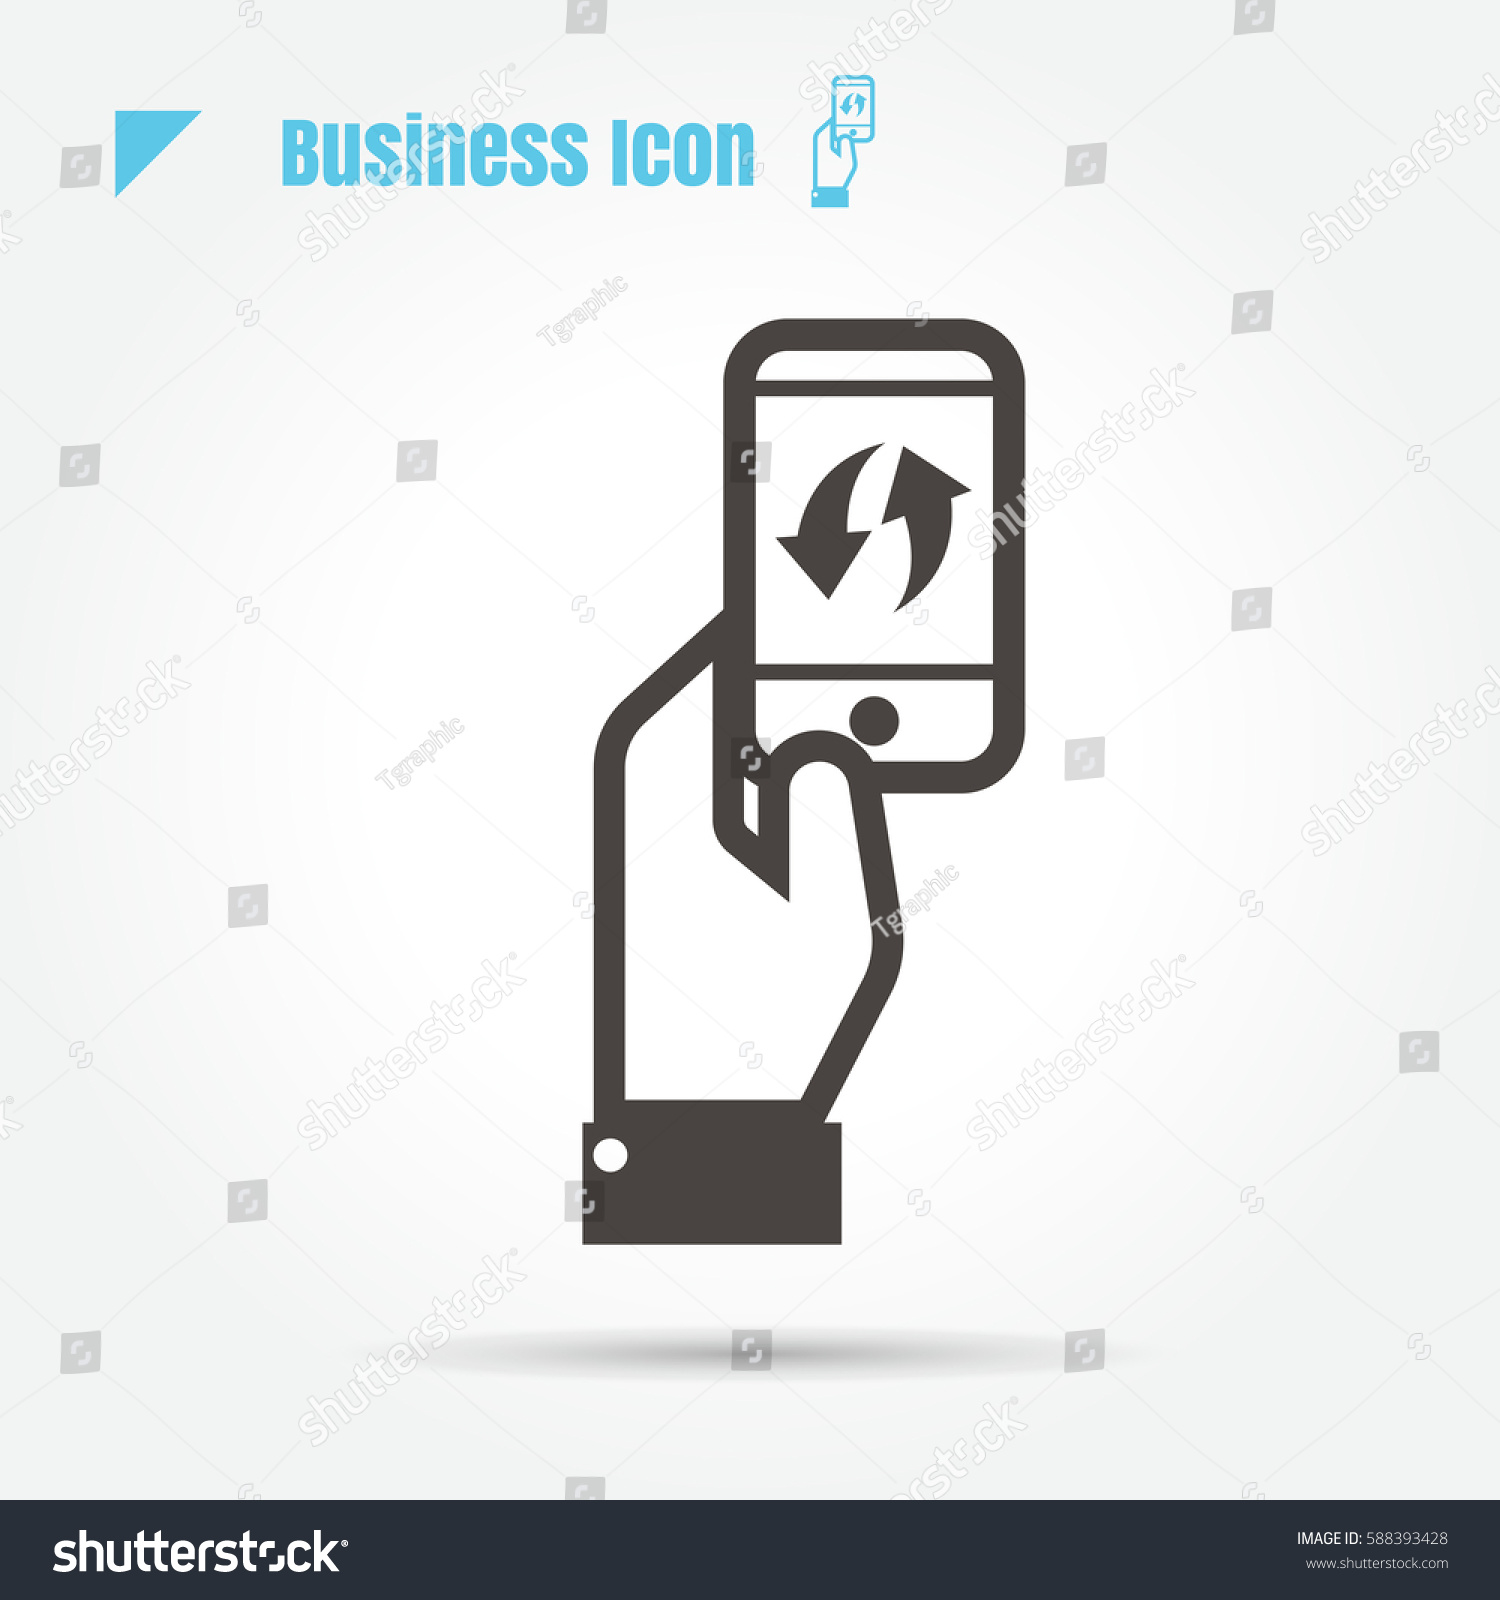 hight resolution of icon business mobile technology innovation exchange illustration isolated sign symbol thin line for web modern